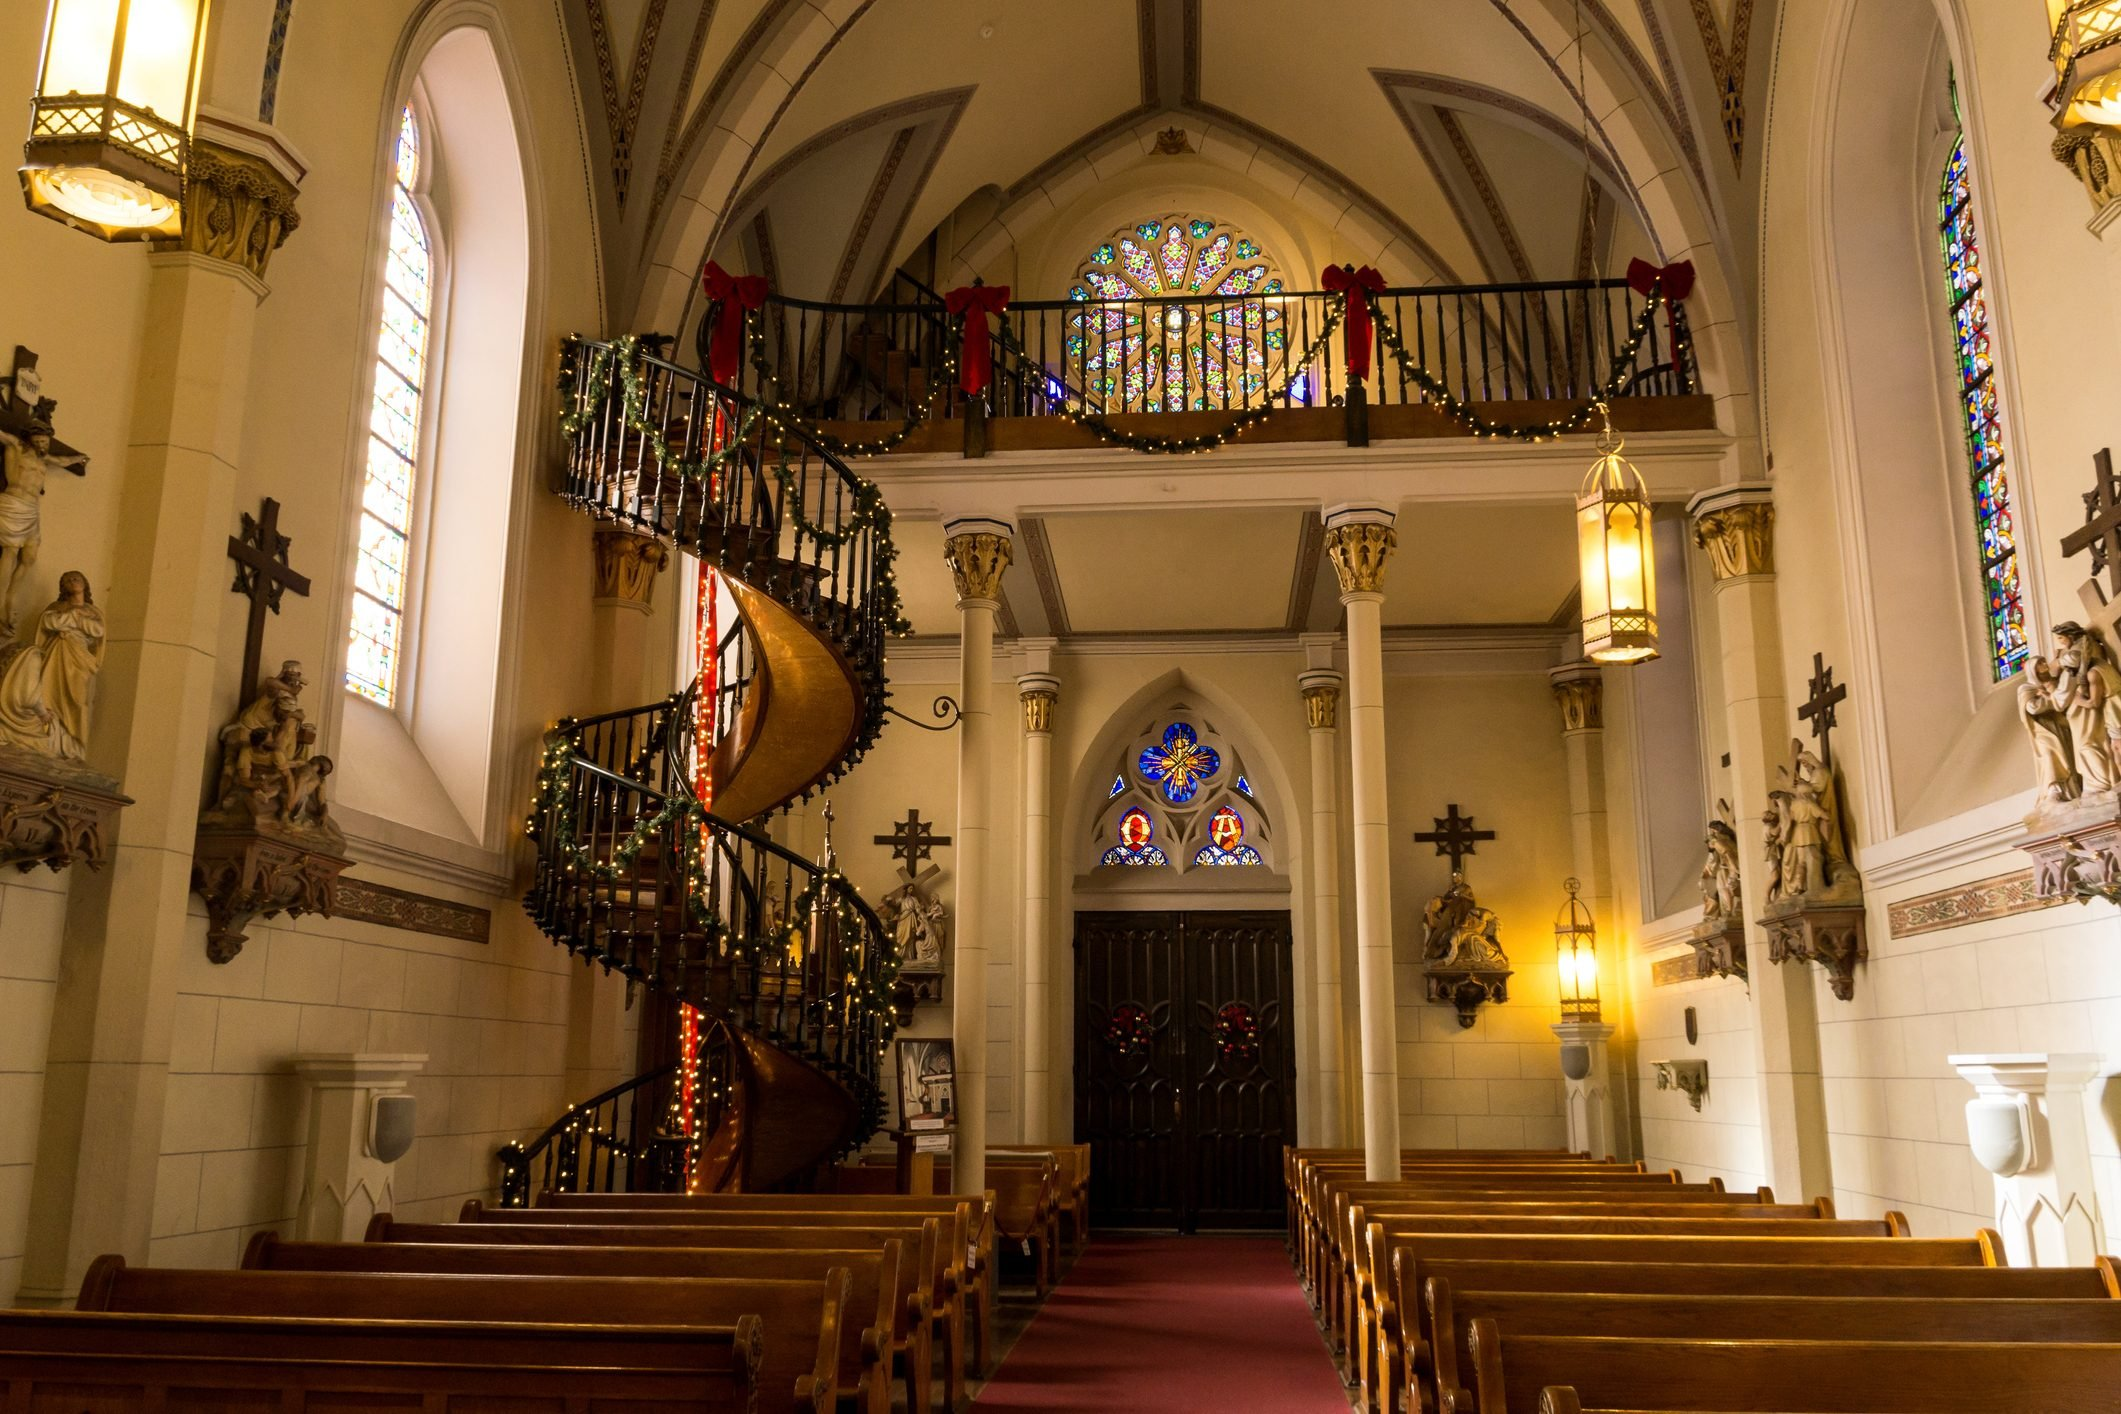 Spiral Staircase of the Loretto Chapel, Santa Fe